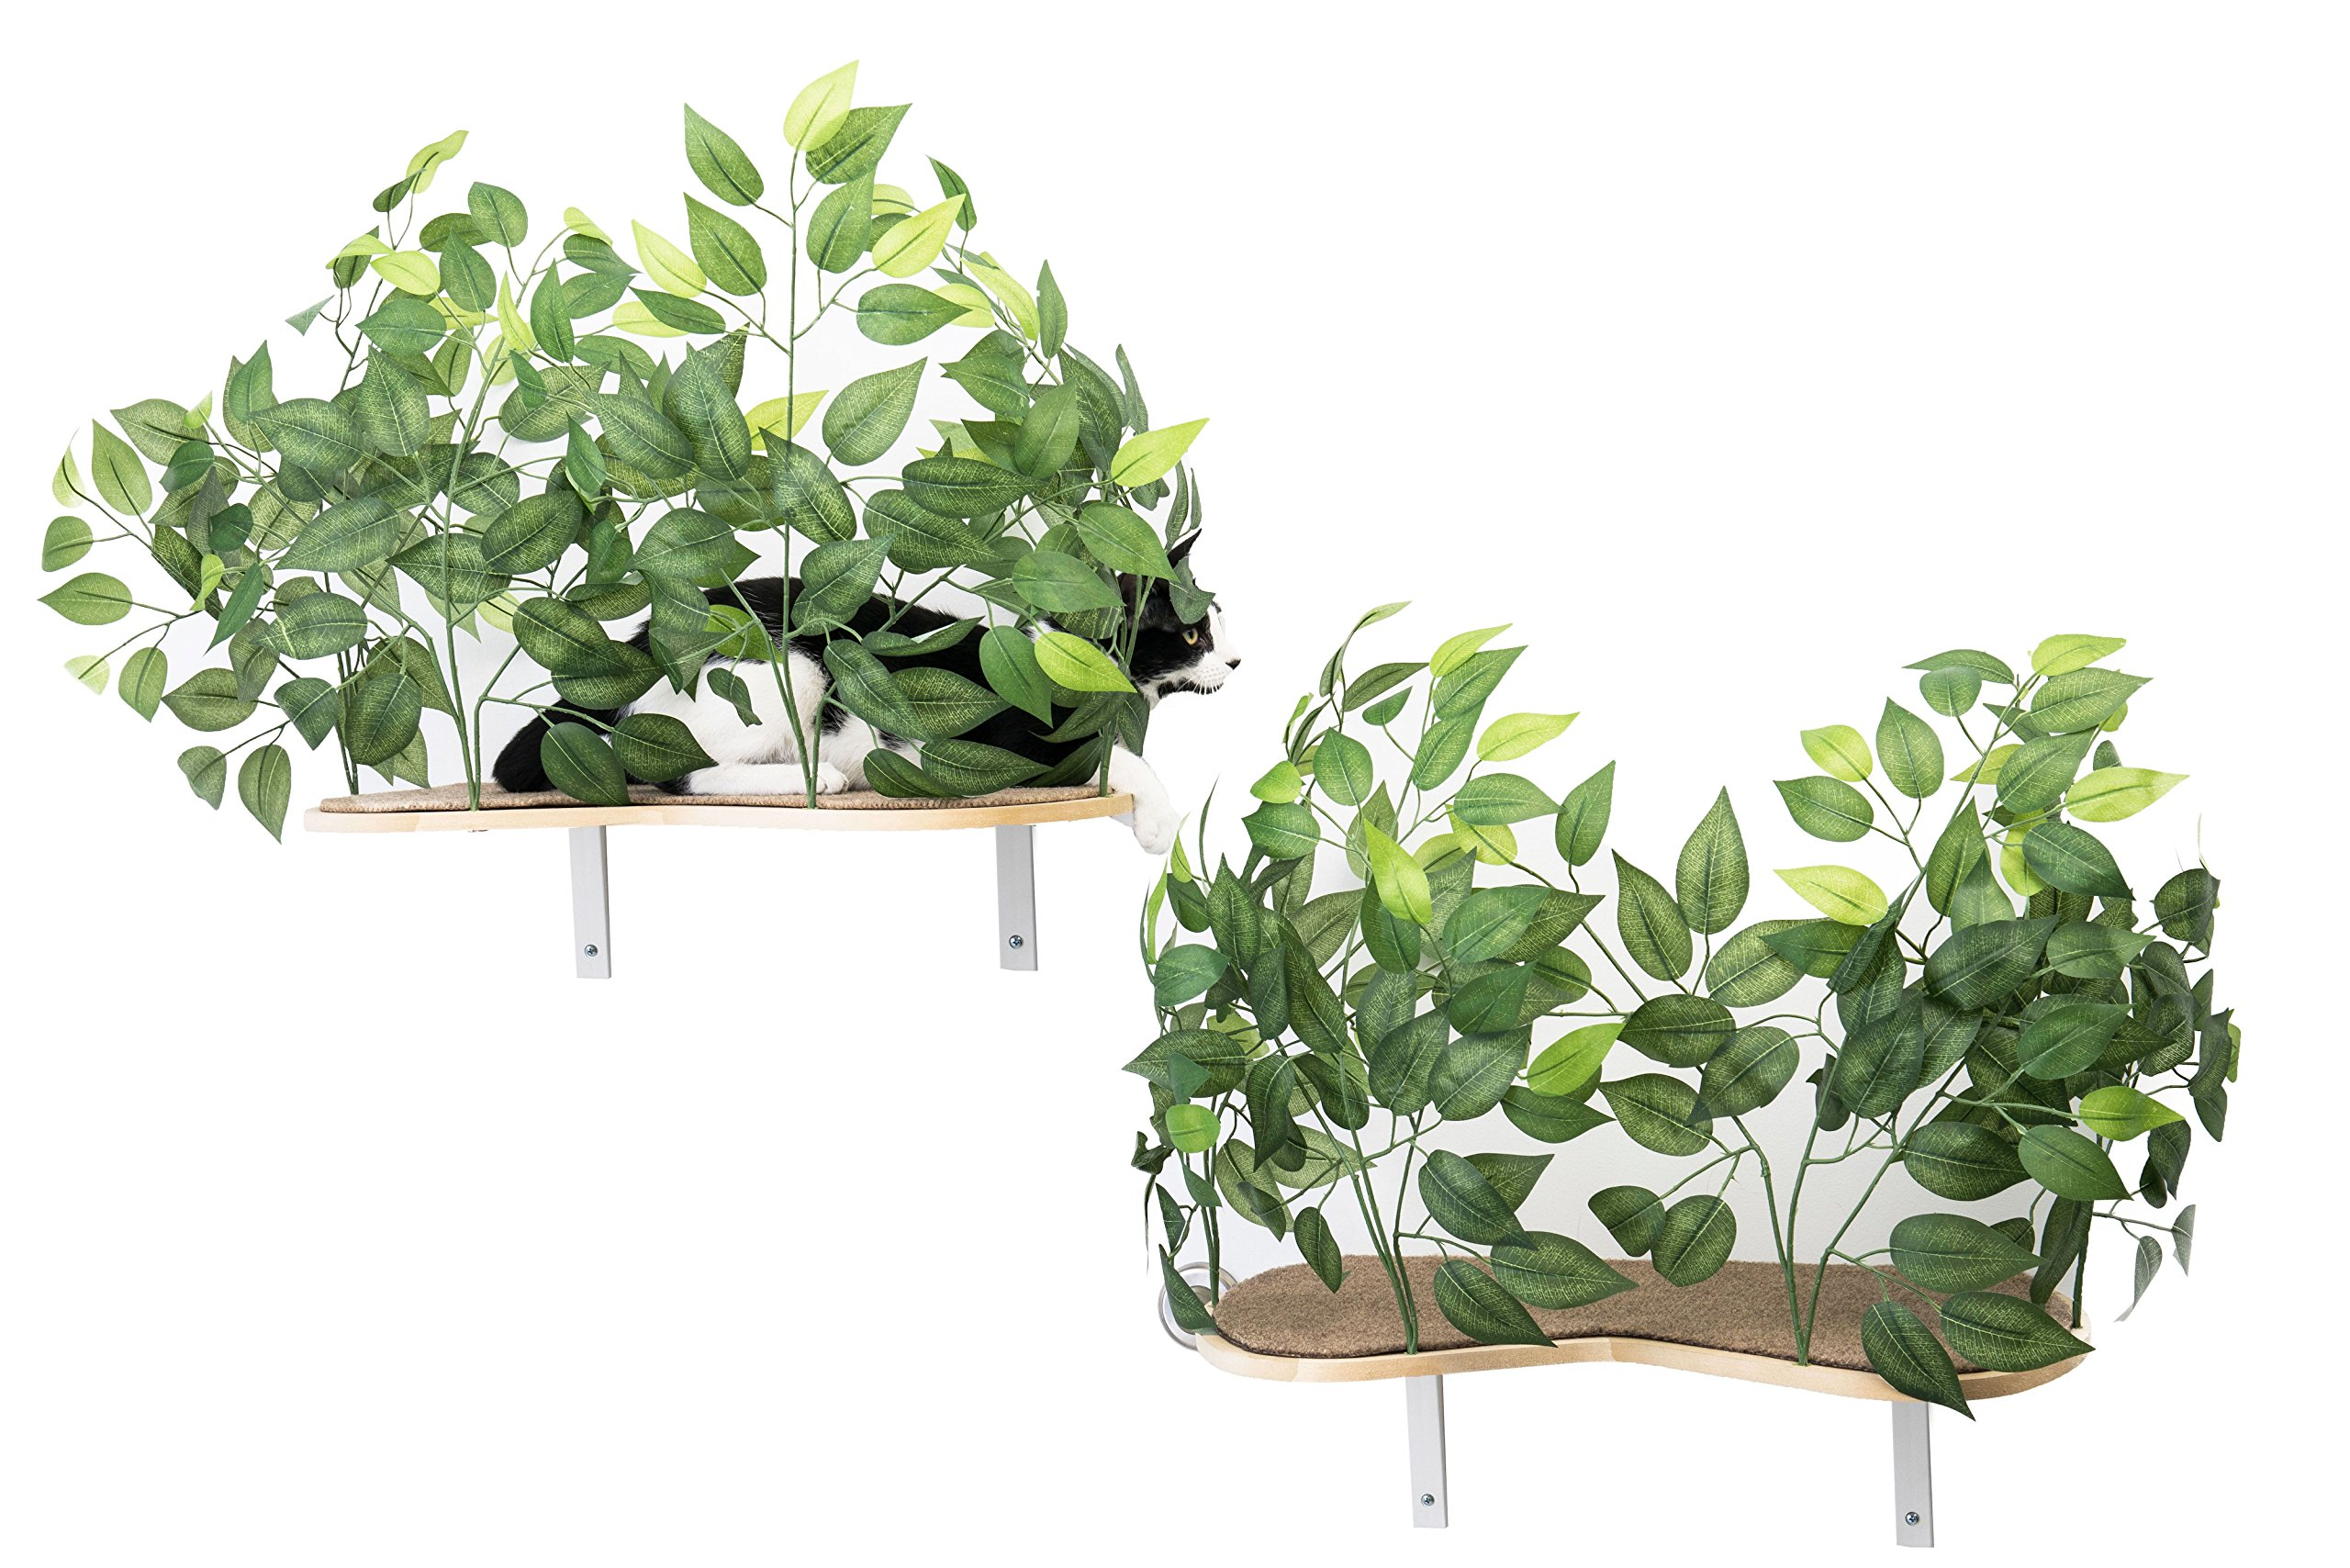 On2Pets Cat Furniture Canopy Shelves for Climbing, Playing and Relaxing, Set of 2 by On2Pets